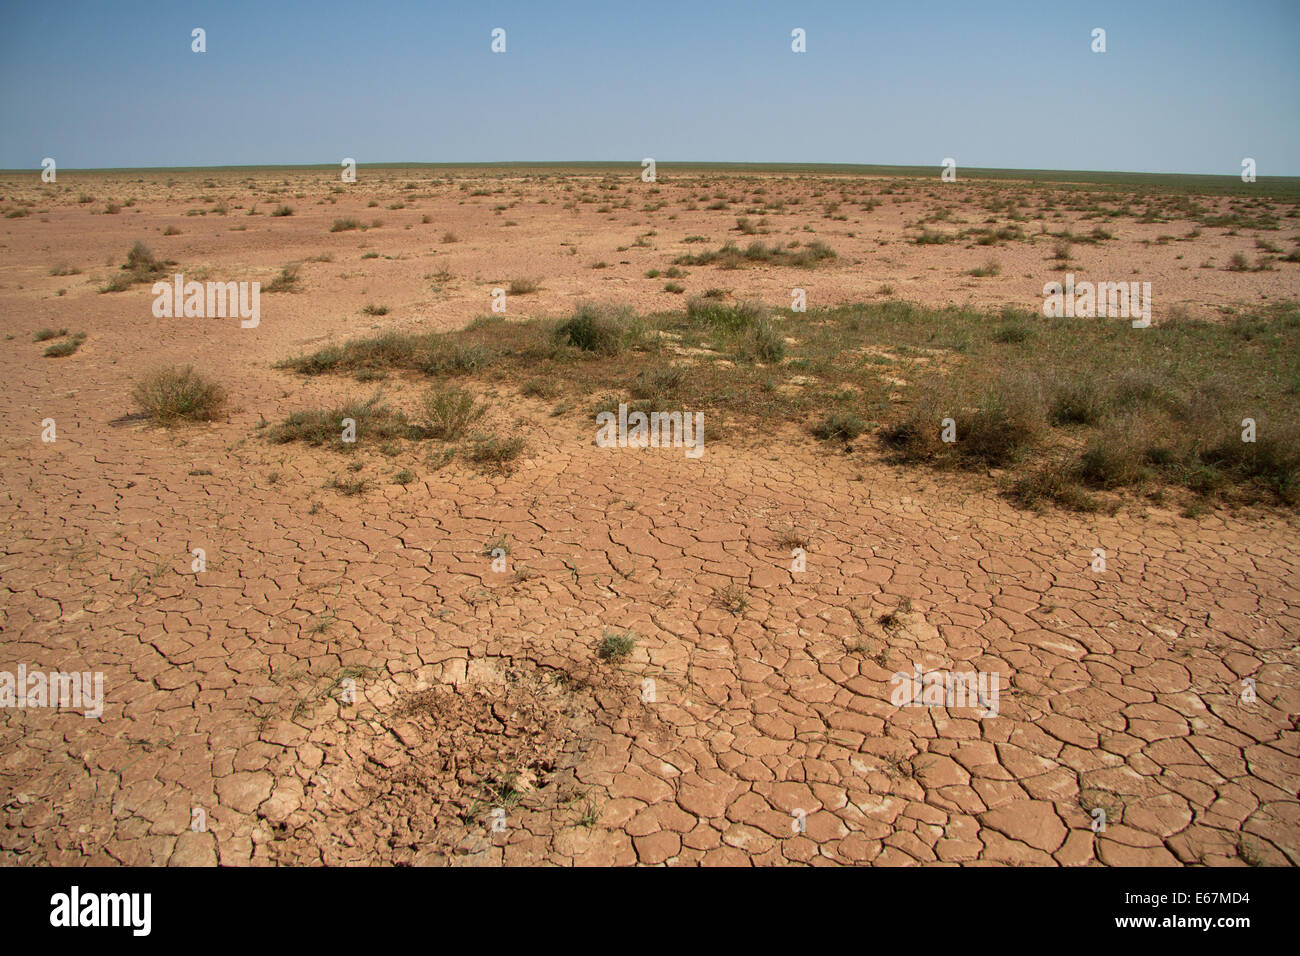 takyr desert with sparse vegetation spring day in Kalmykia - Stock Image